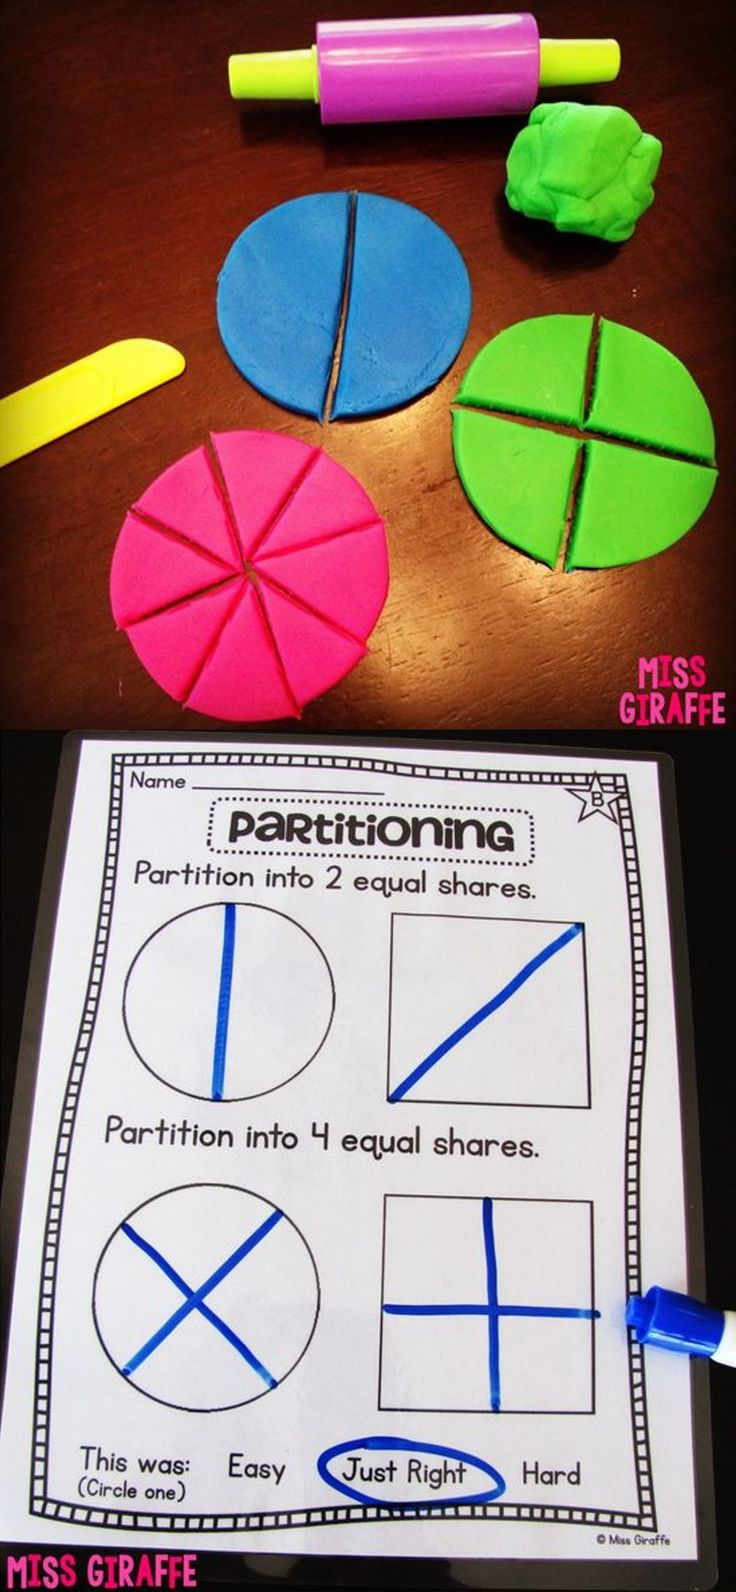 Math fractions activities and ideas to practice partitioning shapes into equal parts first grade